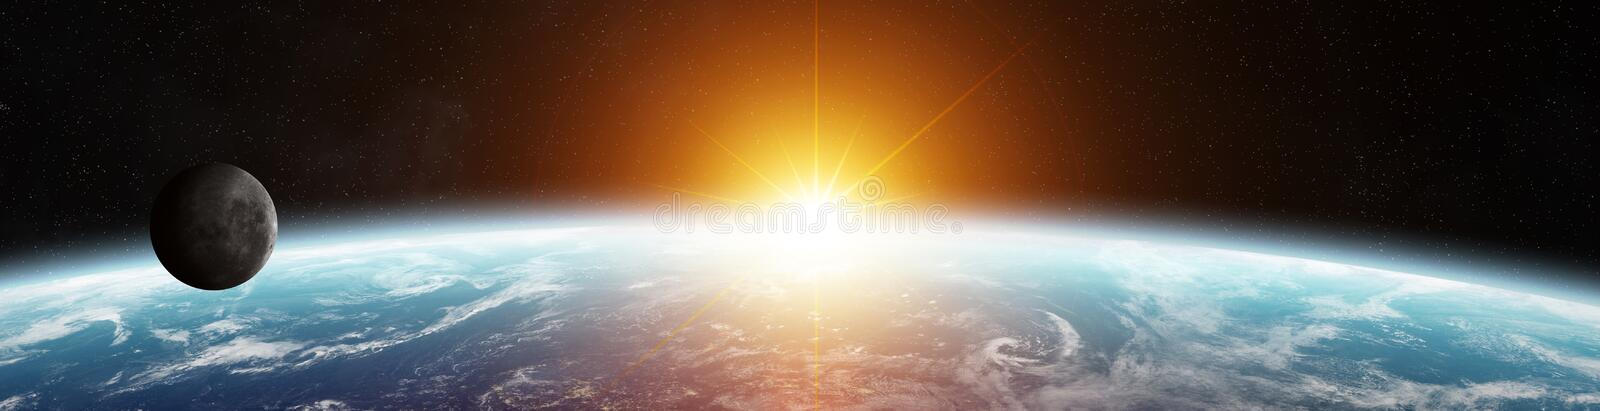 Panorama of distant planet system in space 3D rendering elements vector illustration